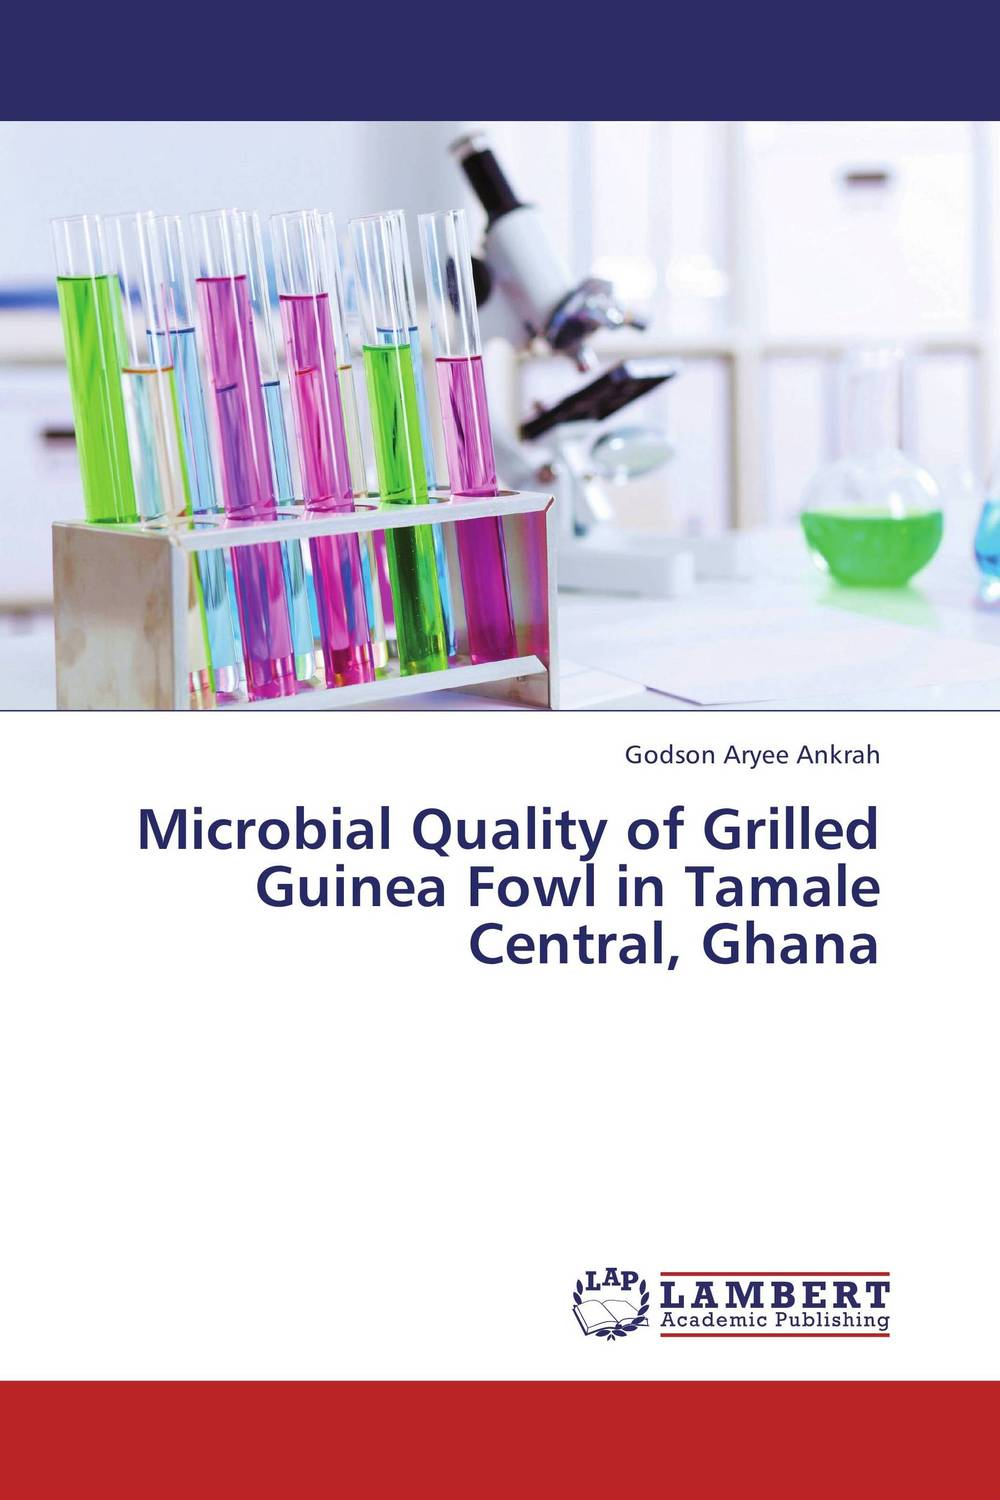 Microbial Quality of Grilled Guinea Fowl in Tamale Central, Ghana